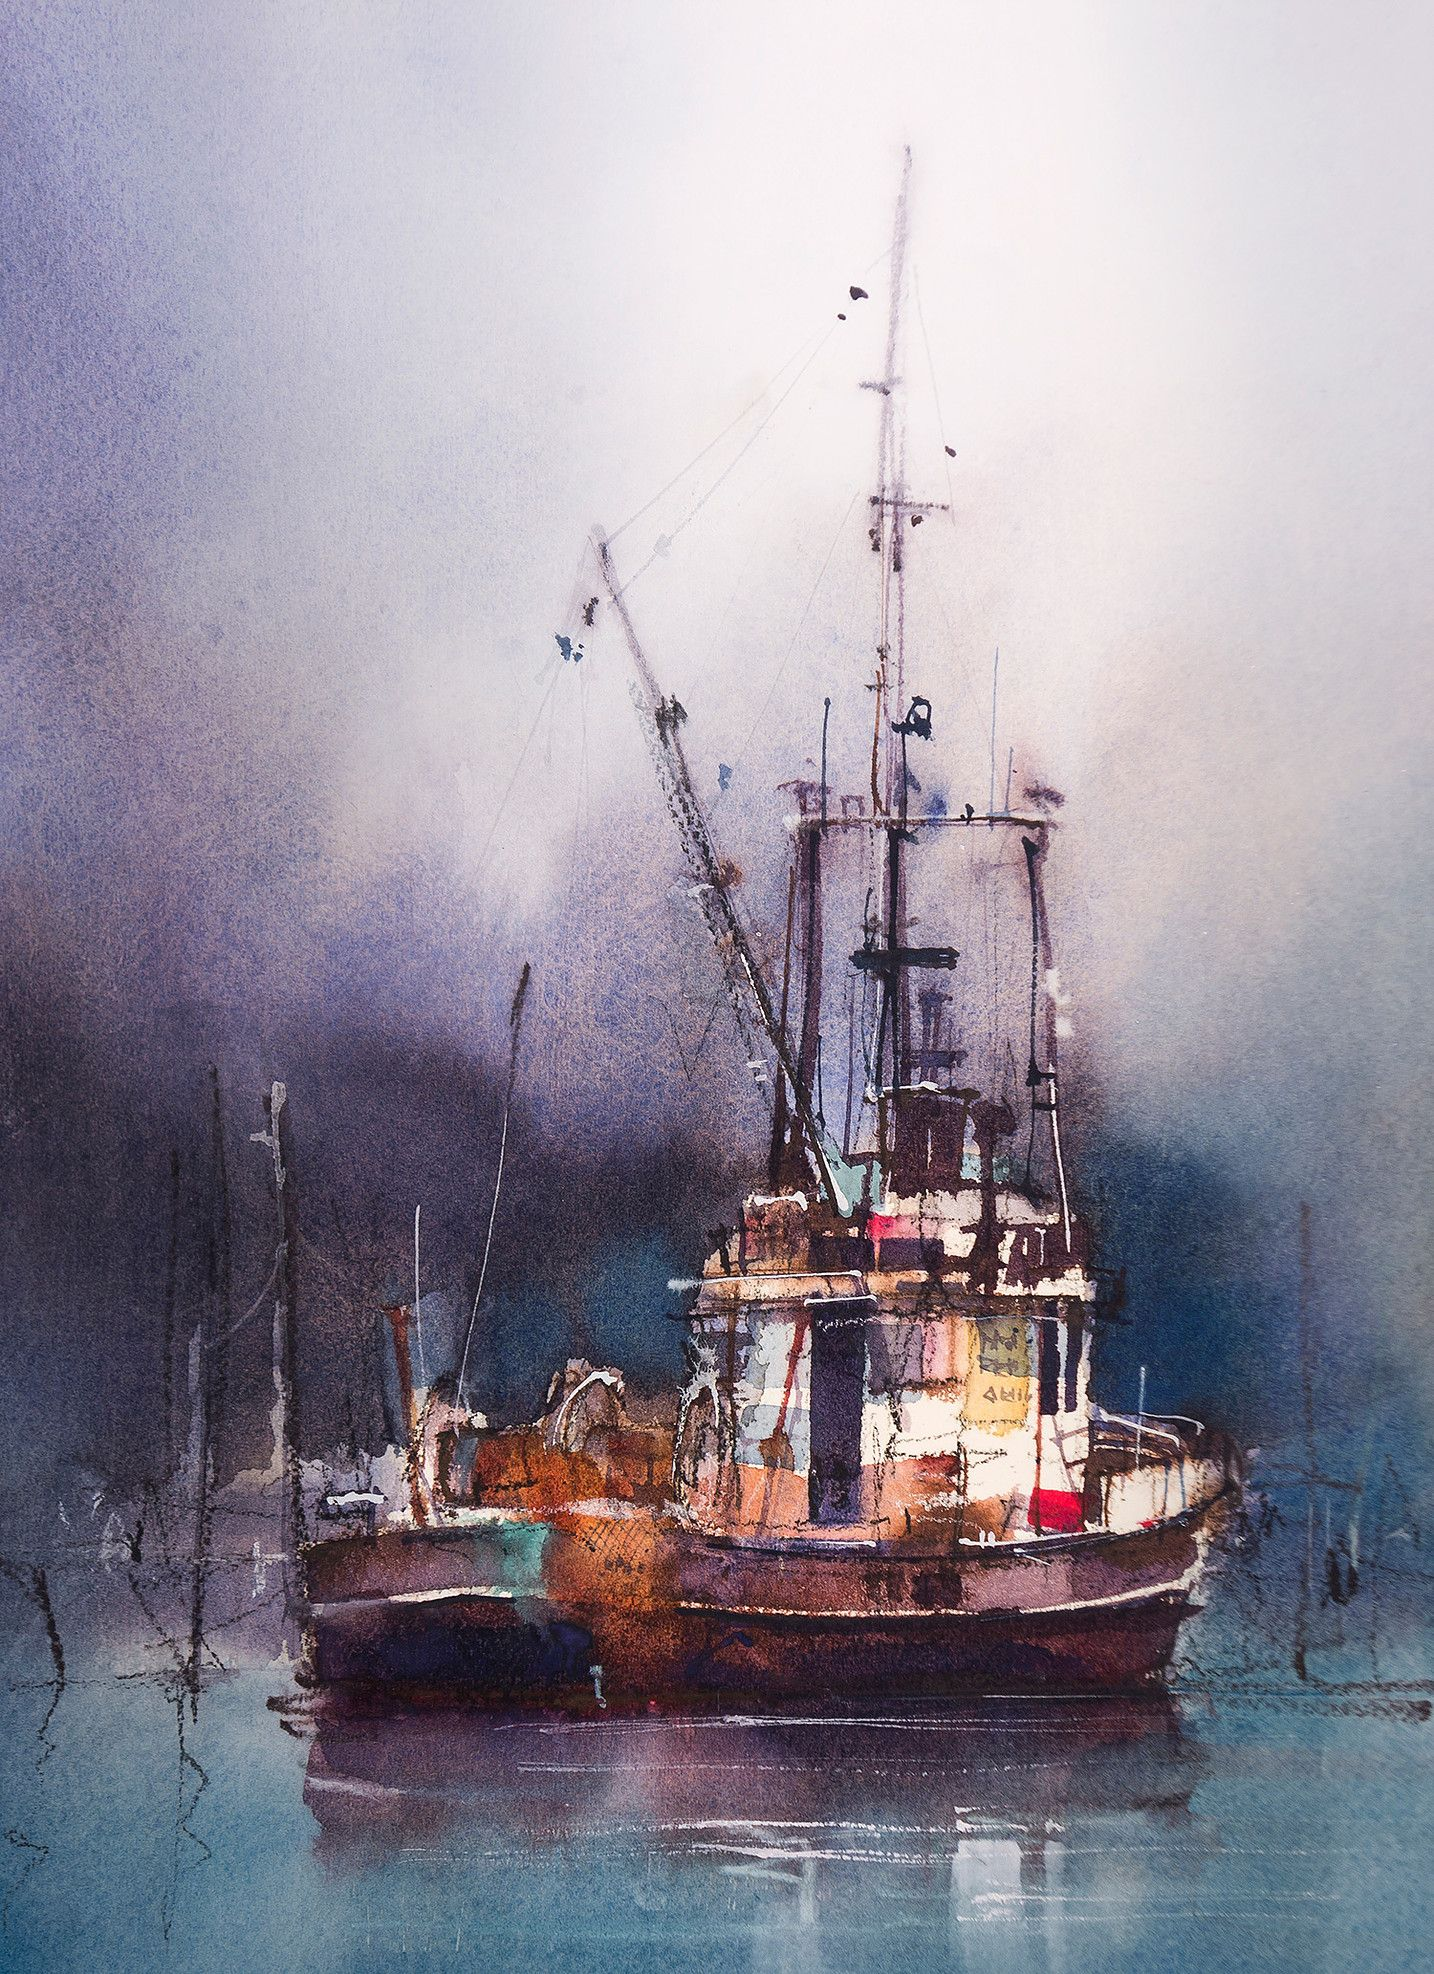 Watercolor Painting Of Moored Fishing Boat Showing Contrasting